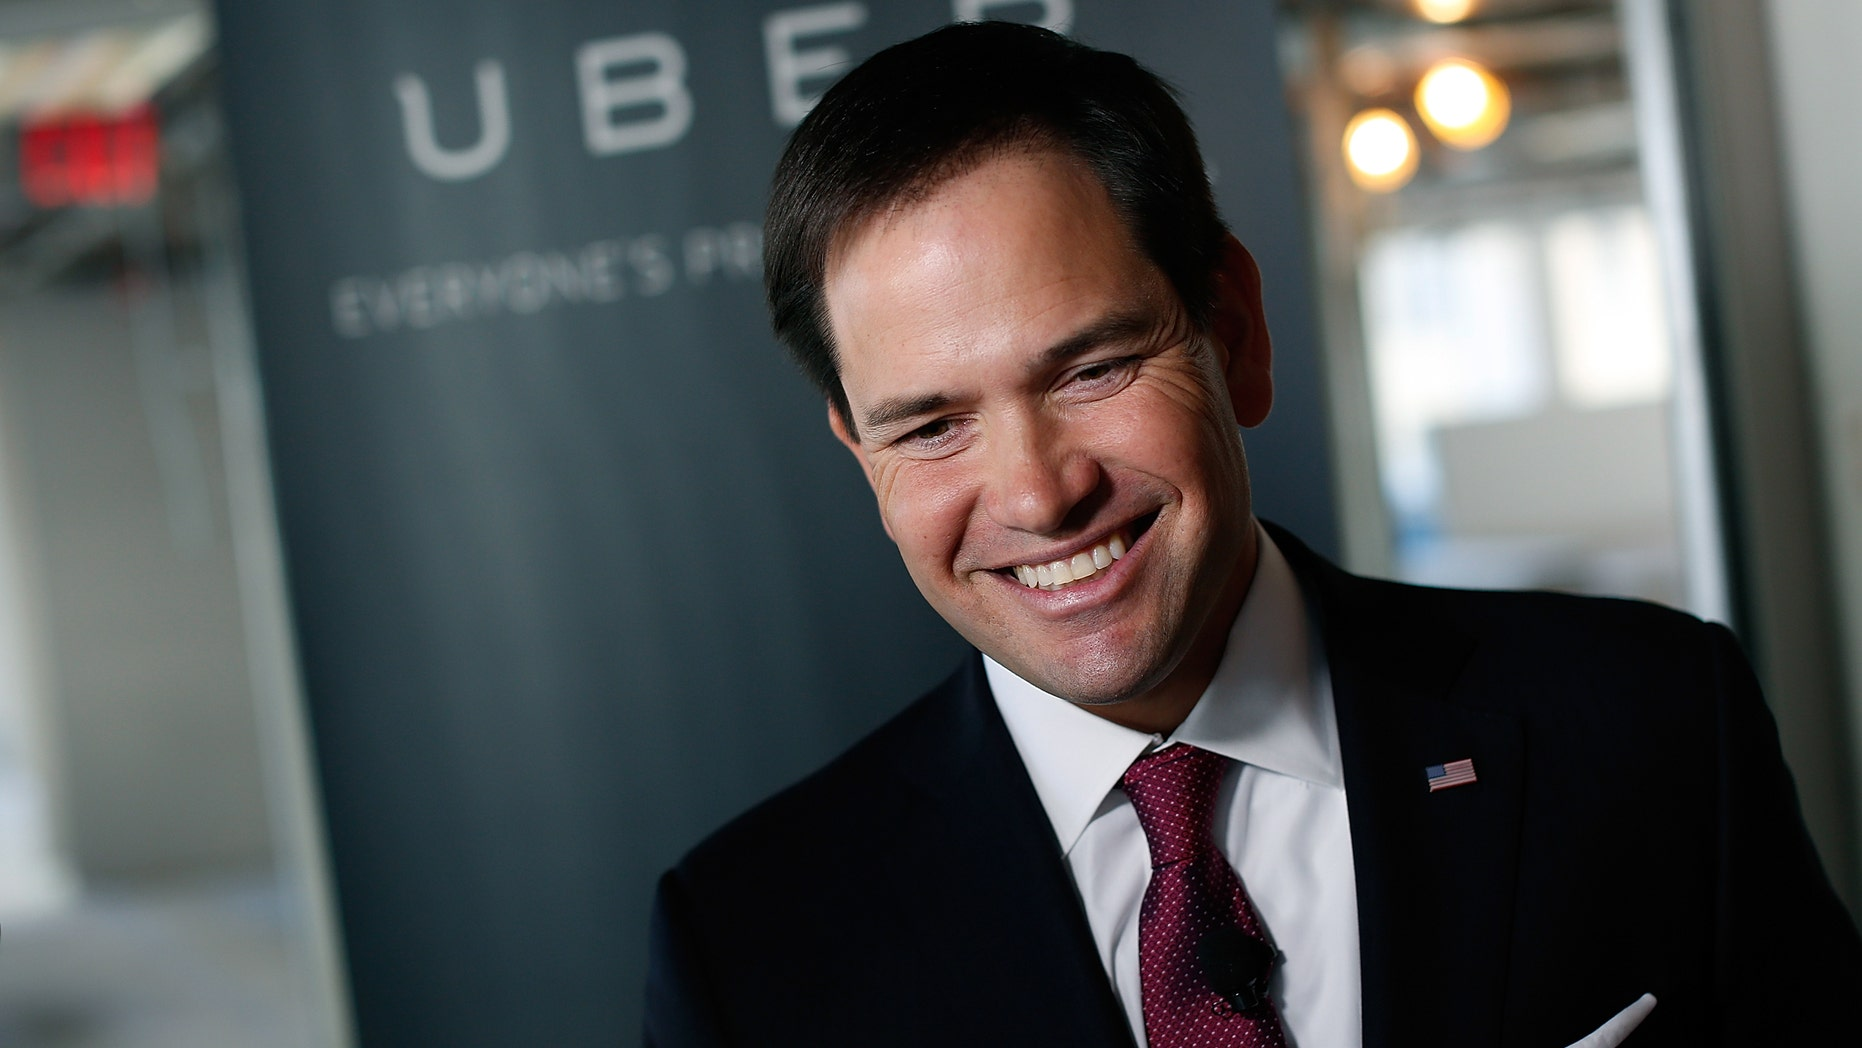 U.S. Sen. Marco Rubio speaks at Uber's headquarters March 23, 2014 in Washington, DC.